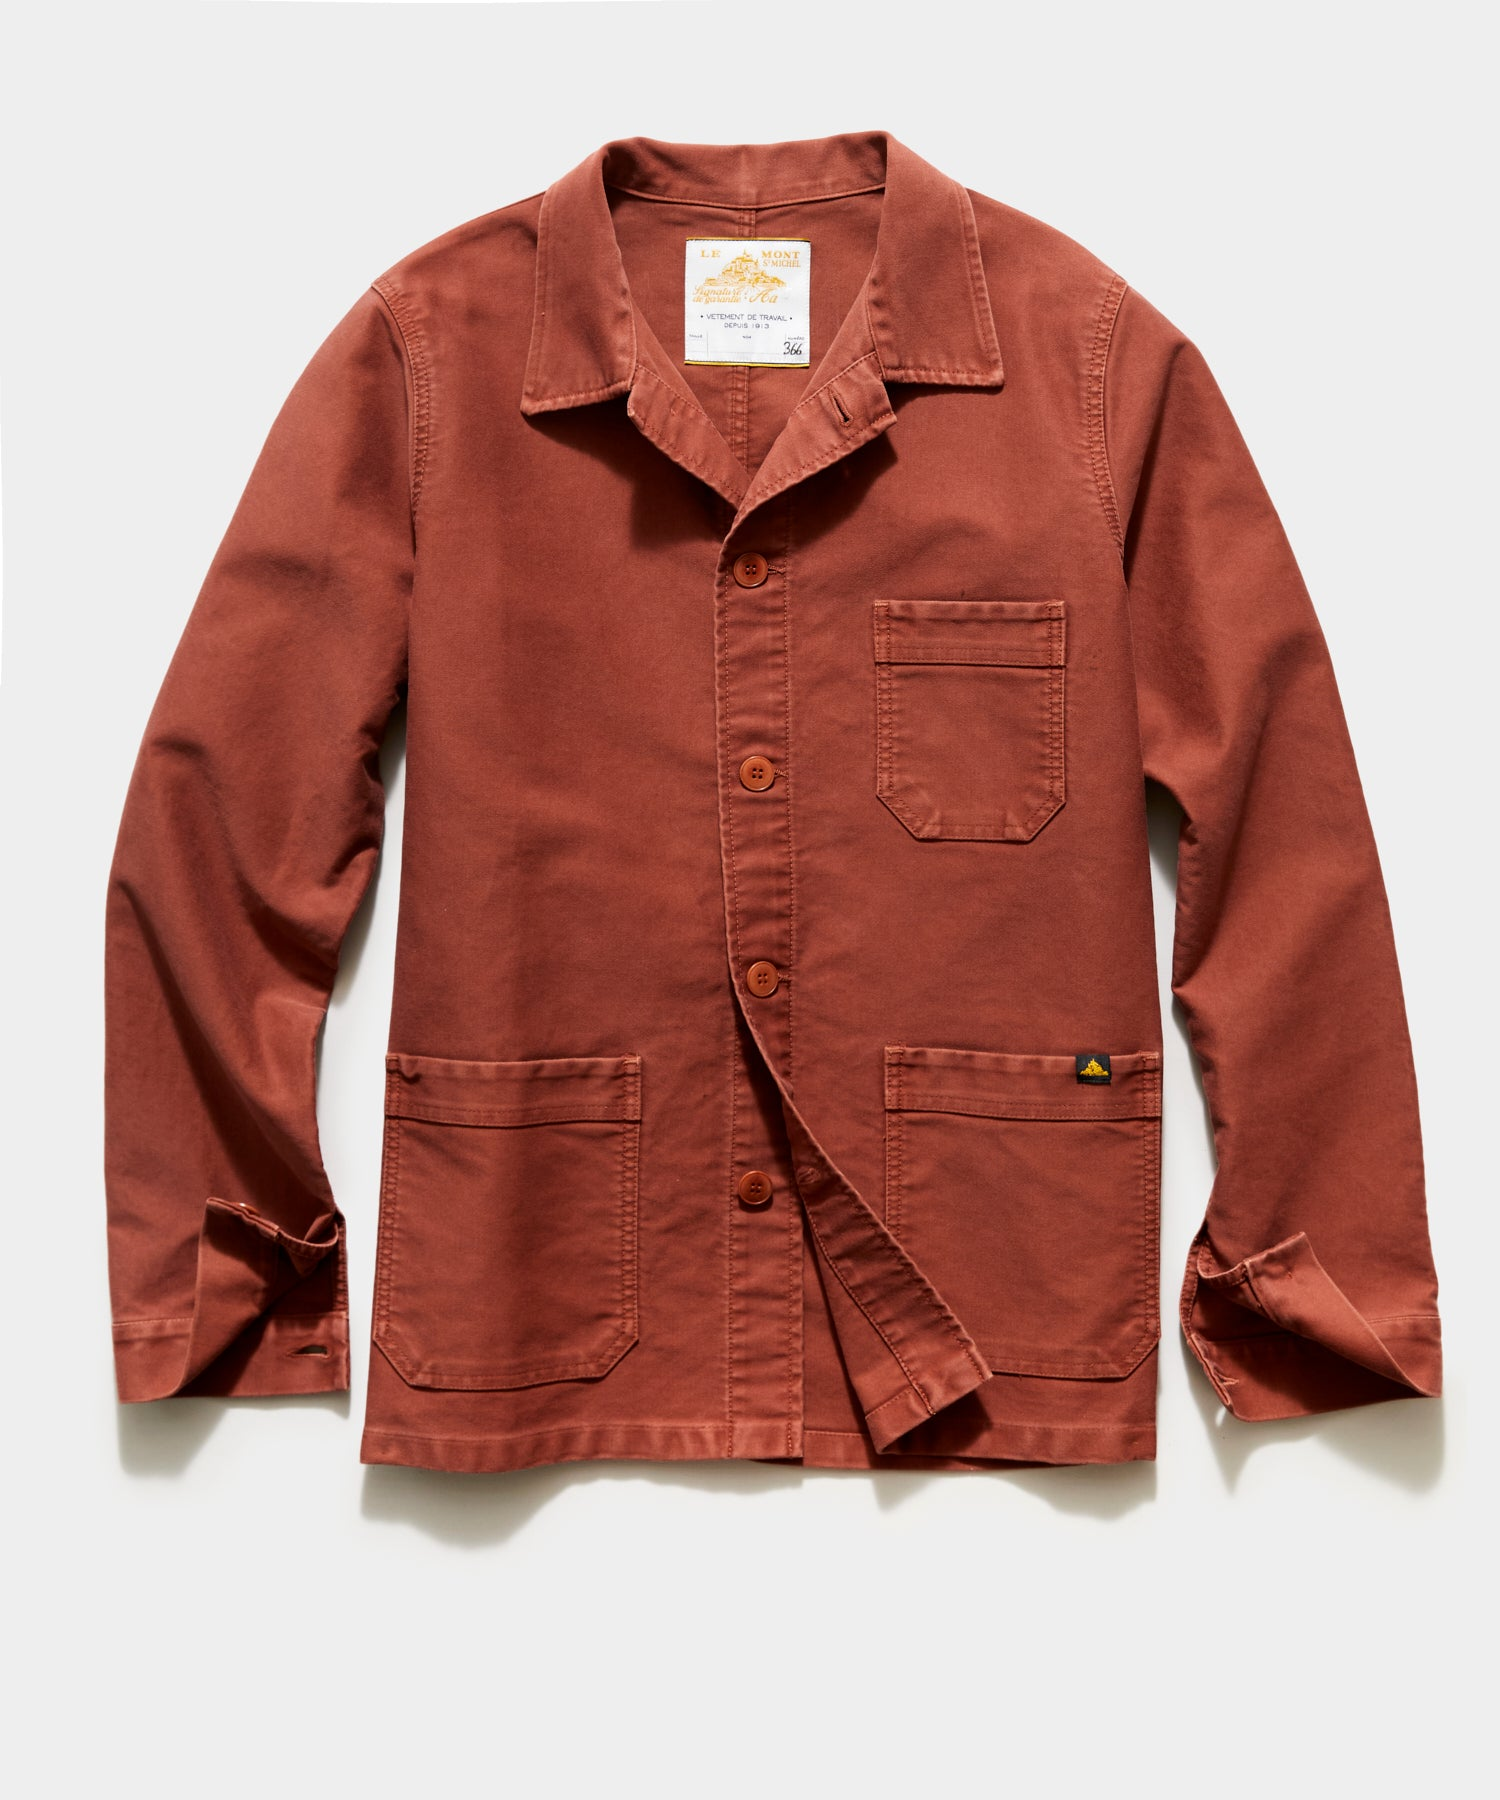 Le Mont St Michel Genuine Work Jacket in Brick